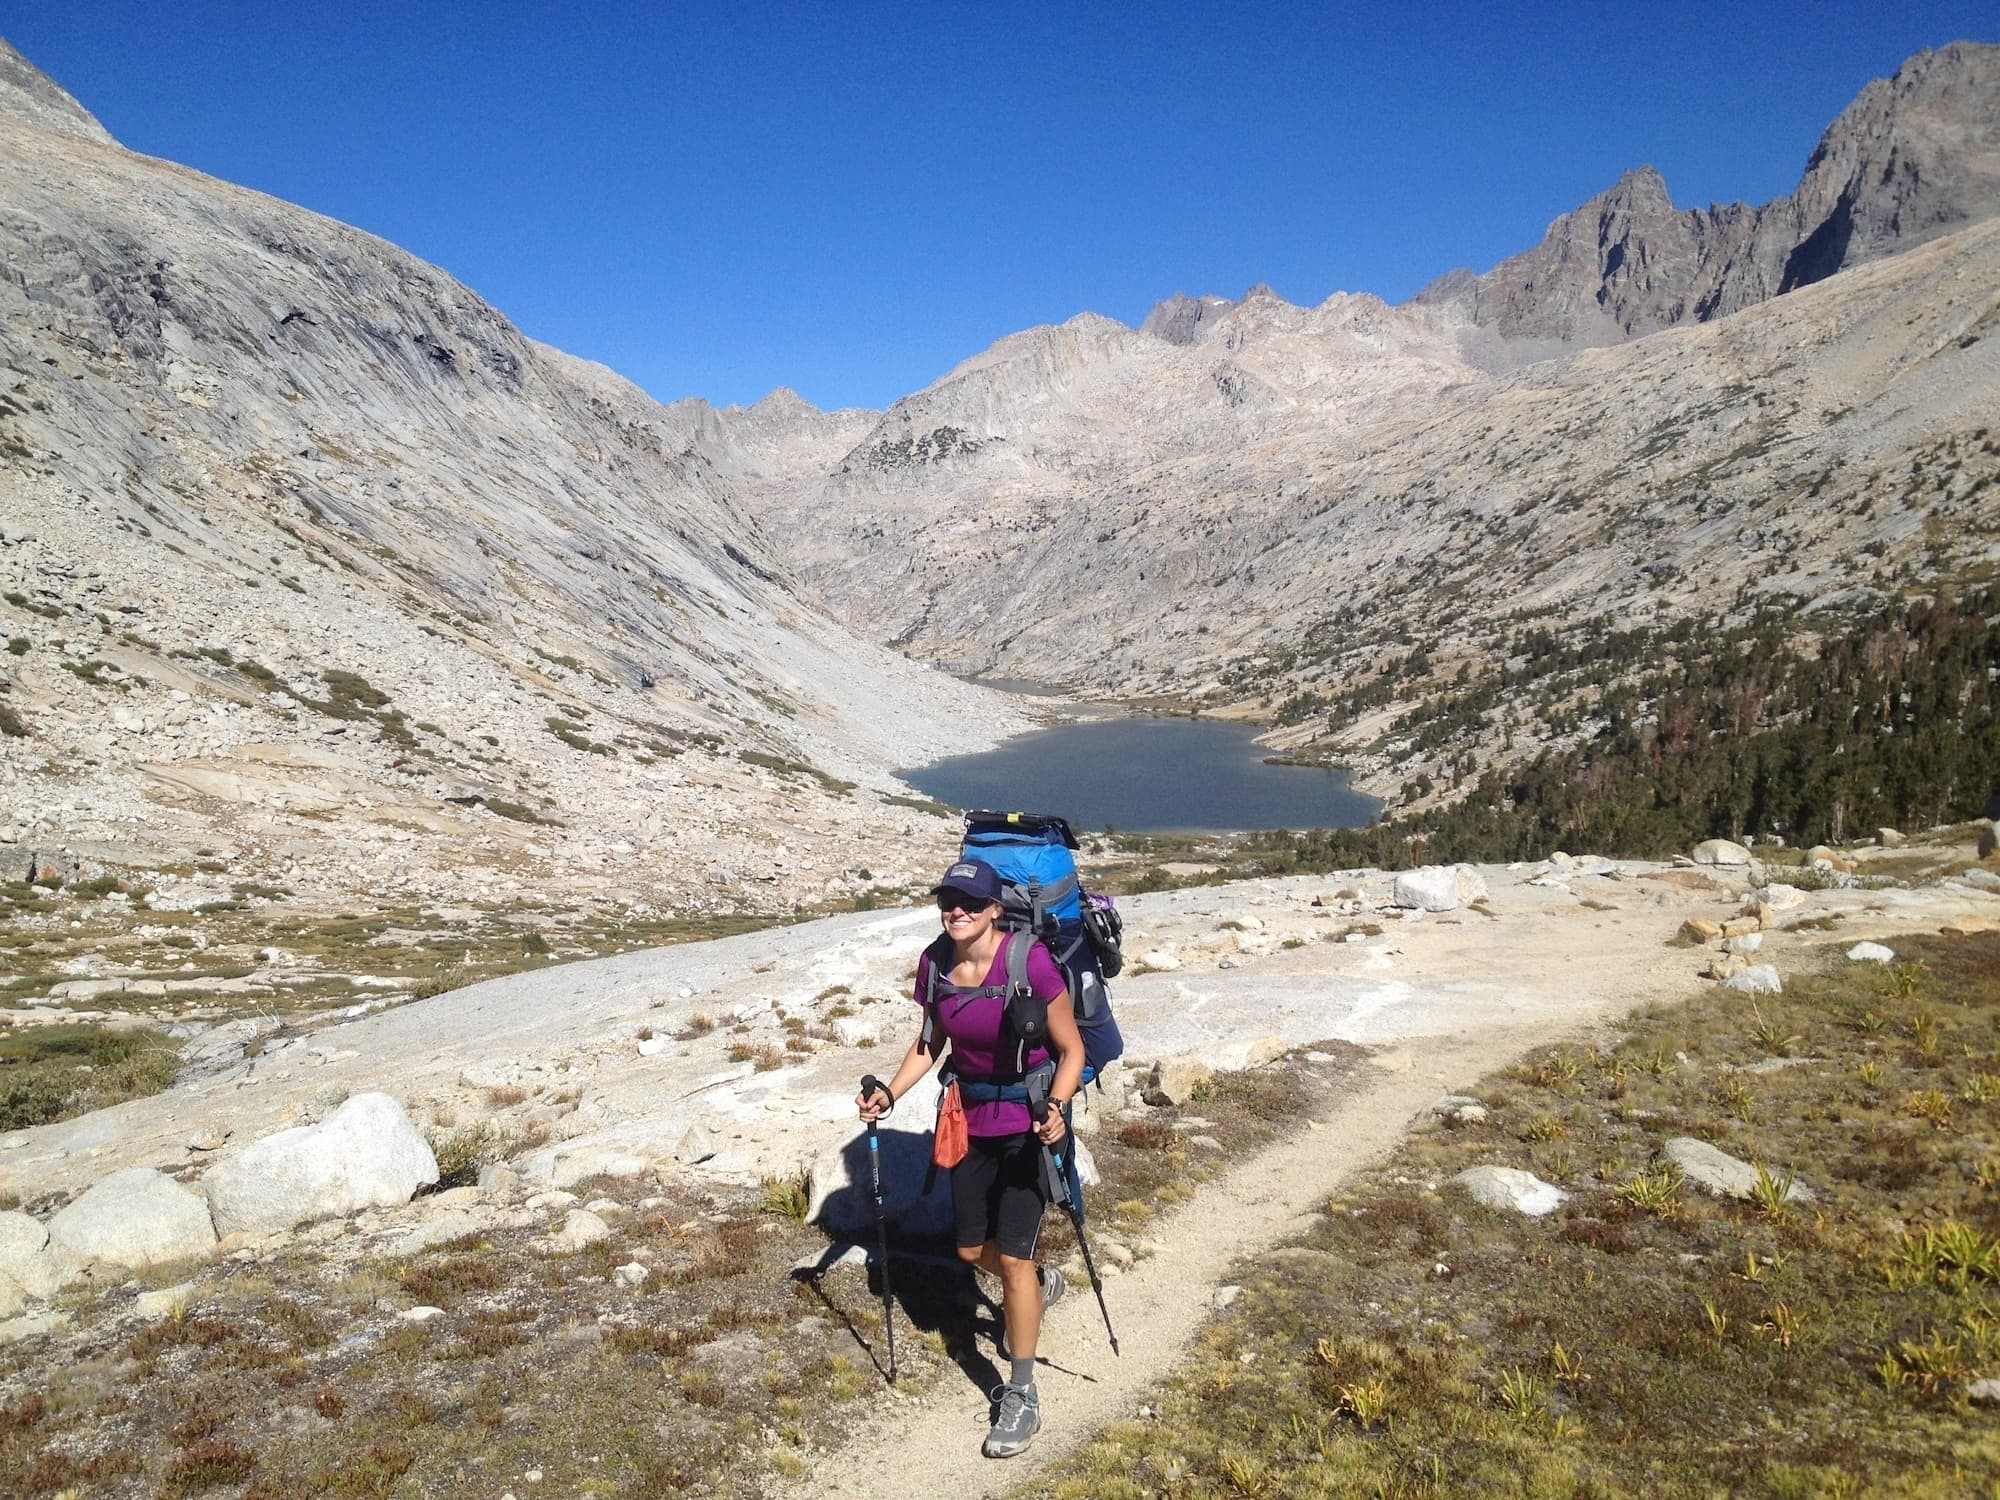 How to Apply for a Southbound John Muir Trail Permit in 2021